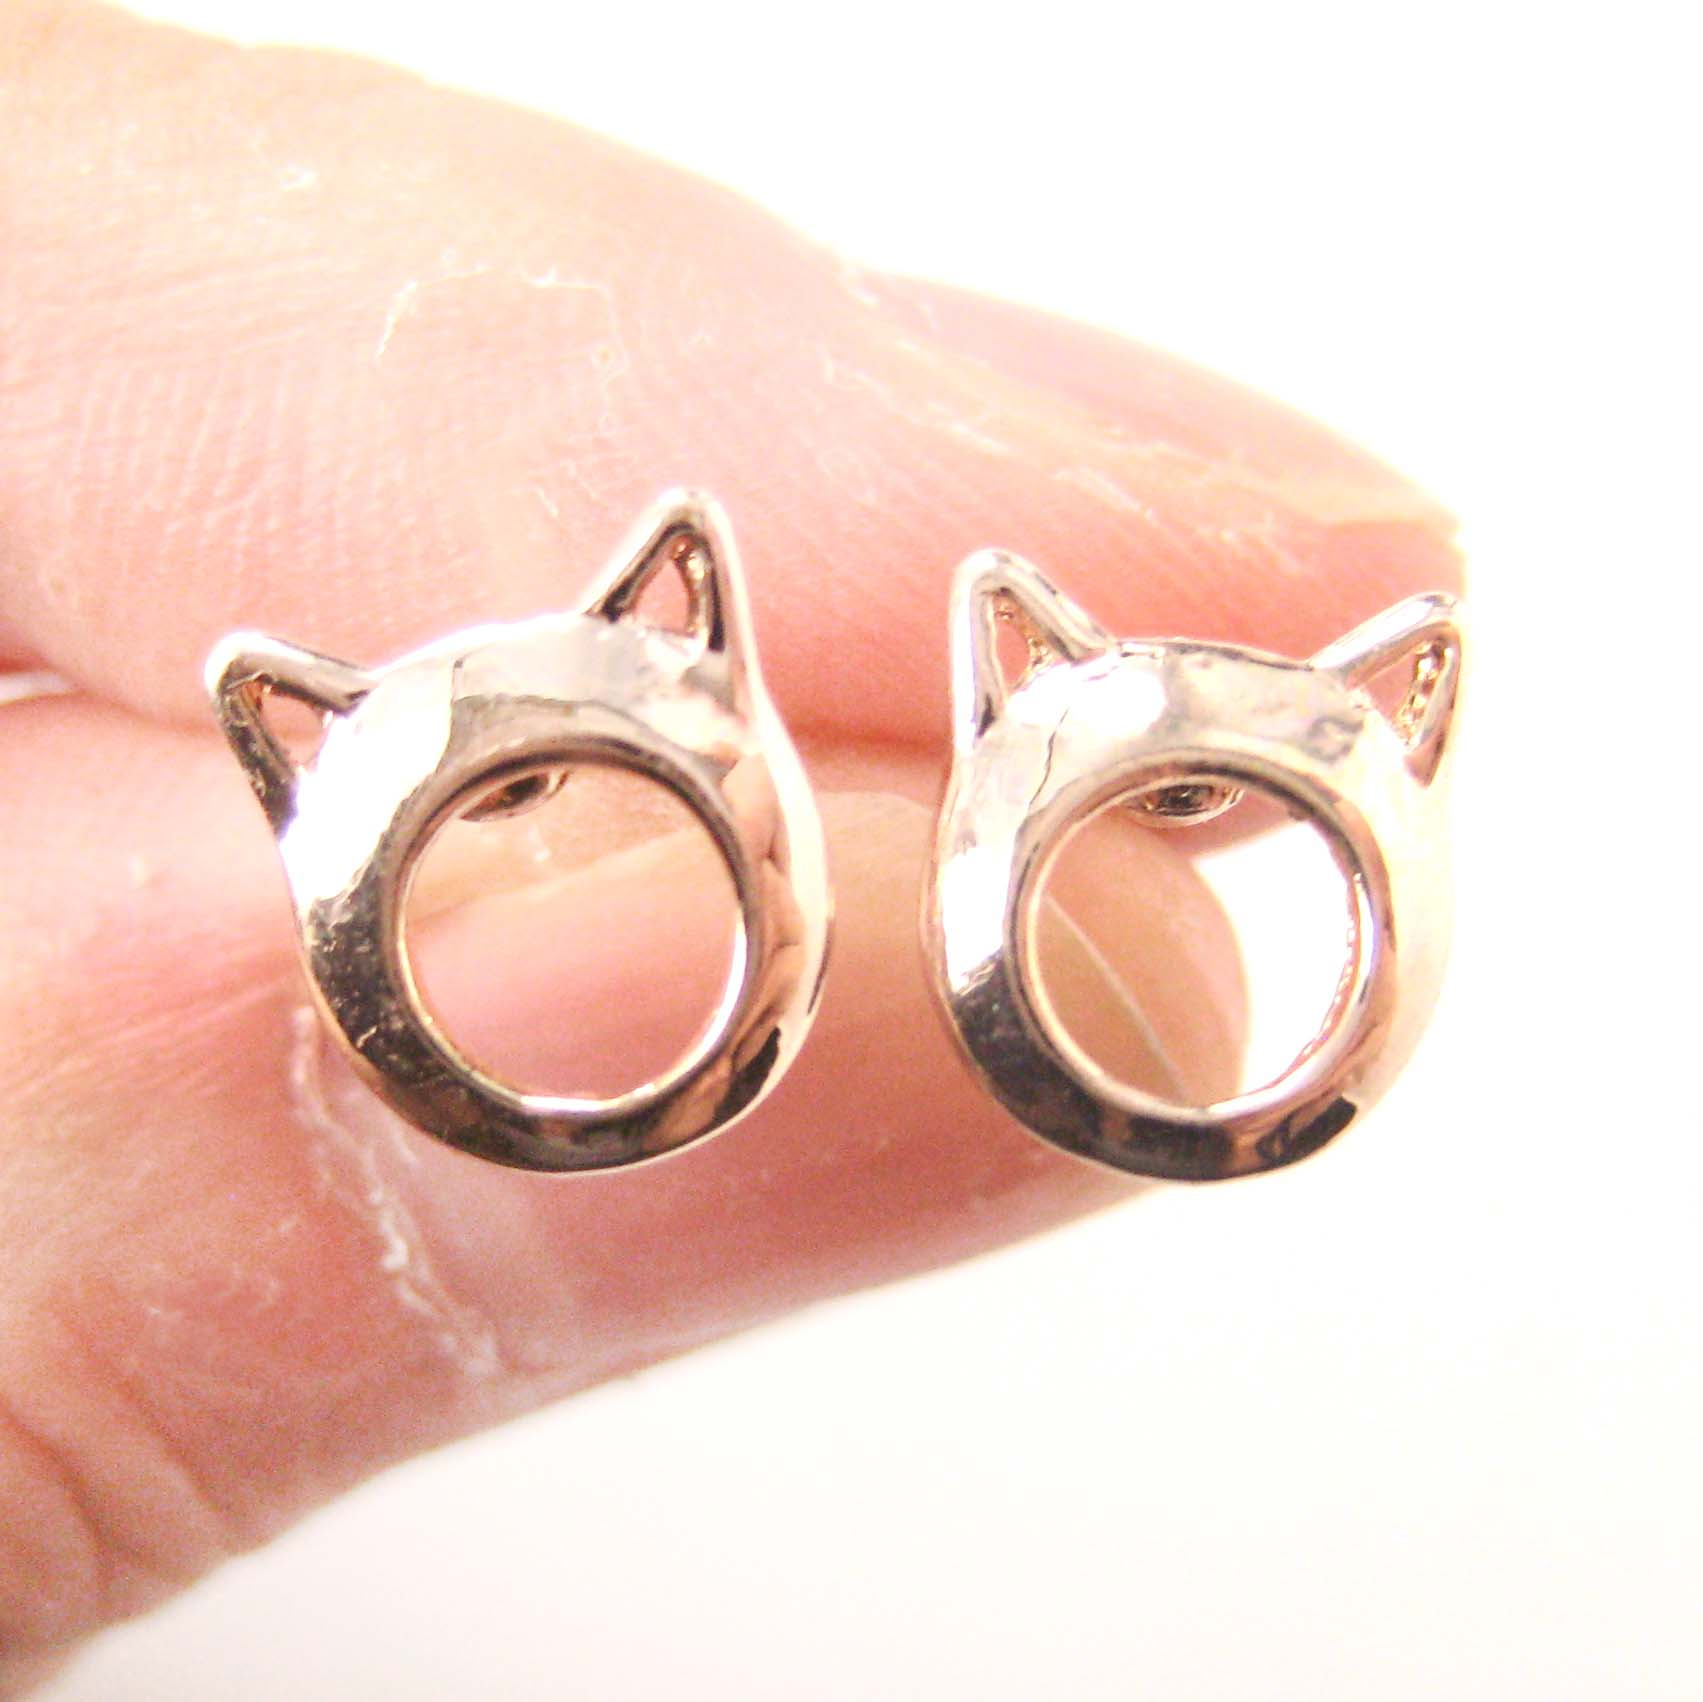 Cute Kitty Cat Ears Animal Shaped Stud Earrings In Rose Gold